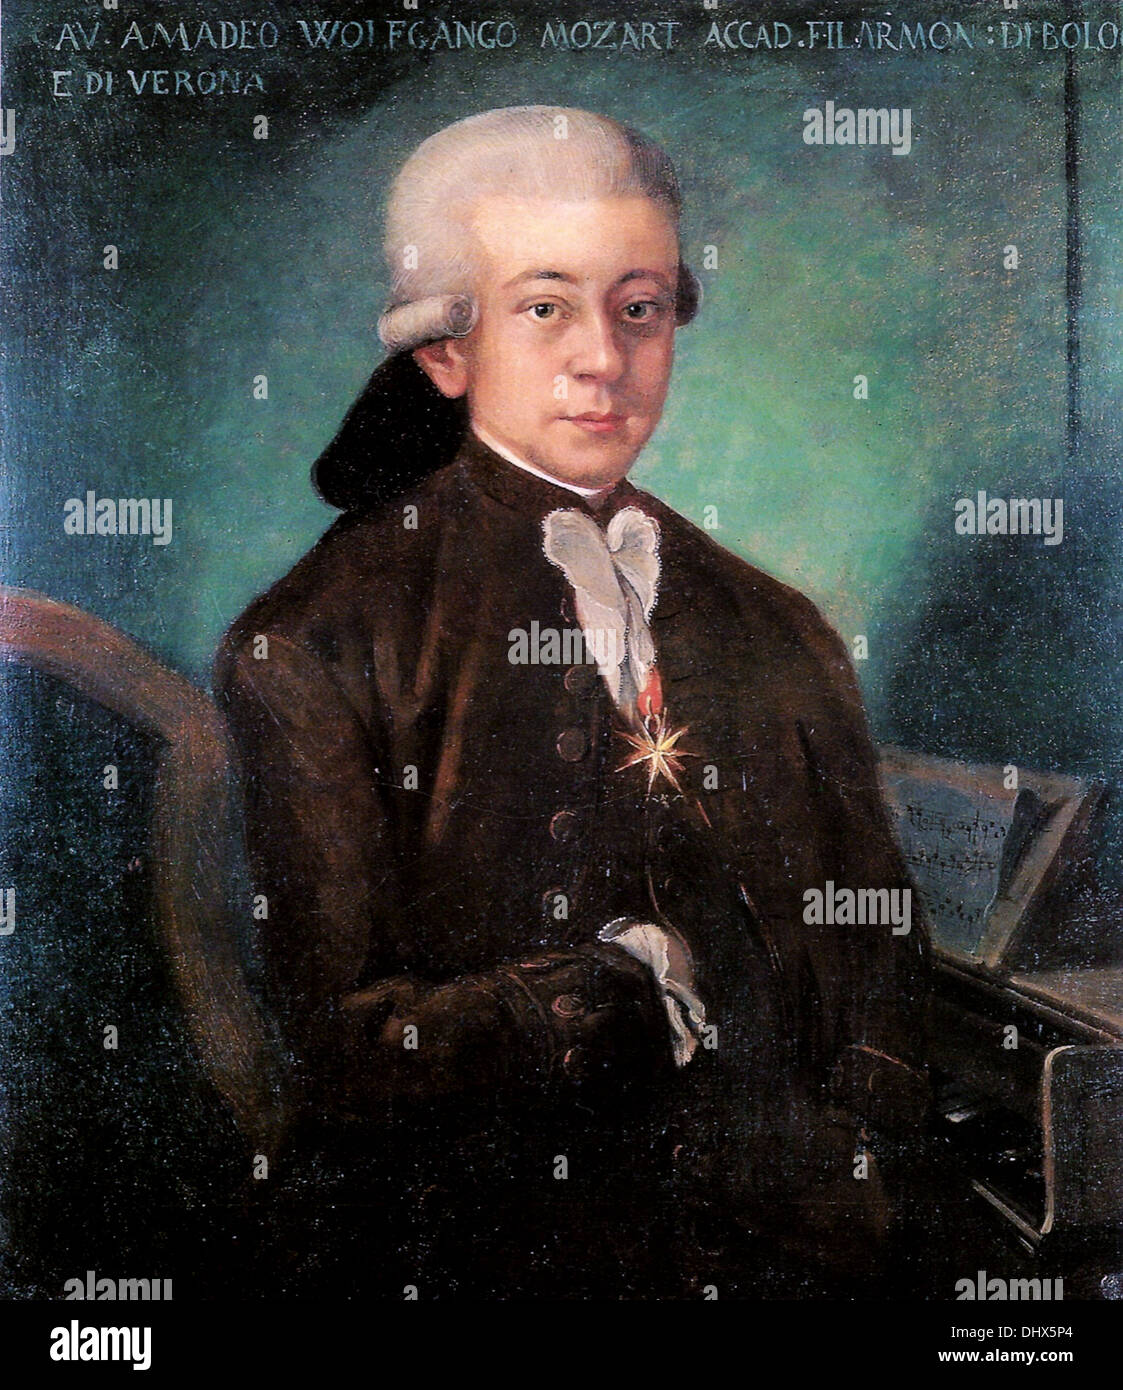 Mozart - by Martini Bologna, 1777 - Stock Image